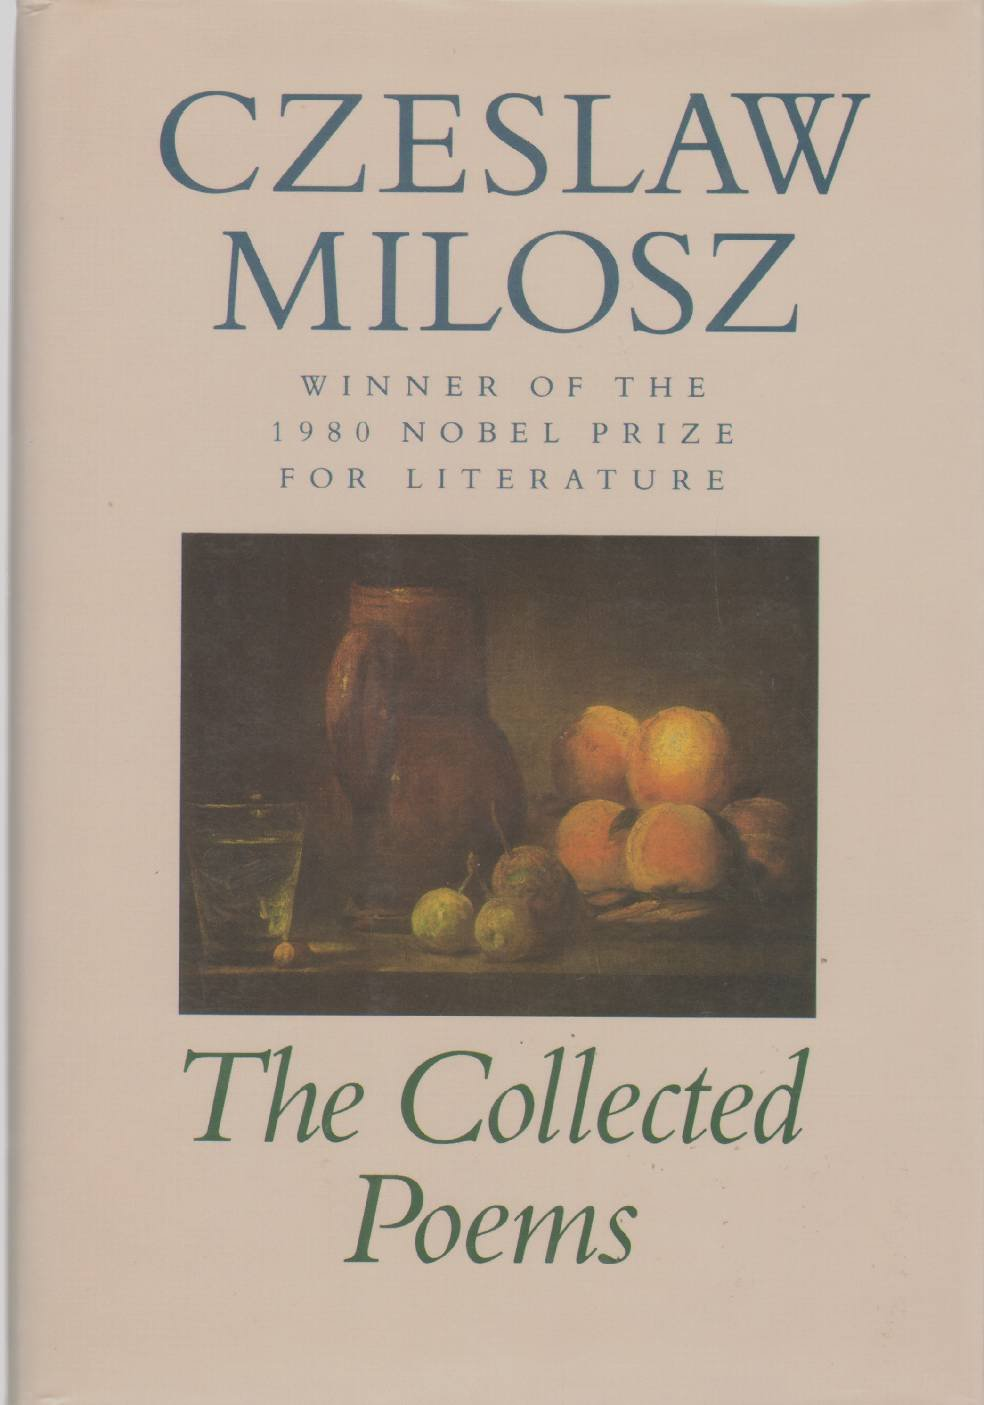 Amazon: The Collected Poems, 19311987 (9780880011730): Czeslaw Milosz:  Books